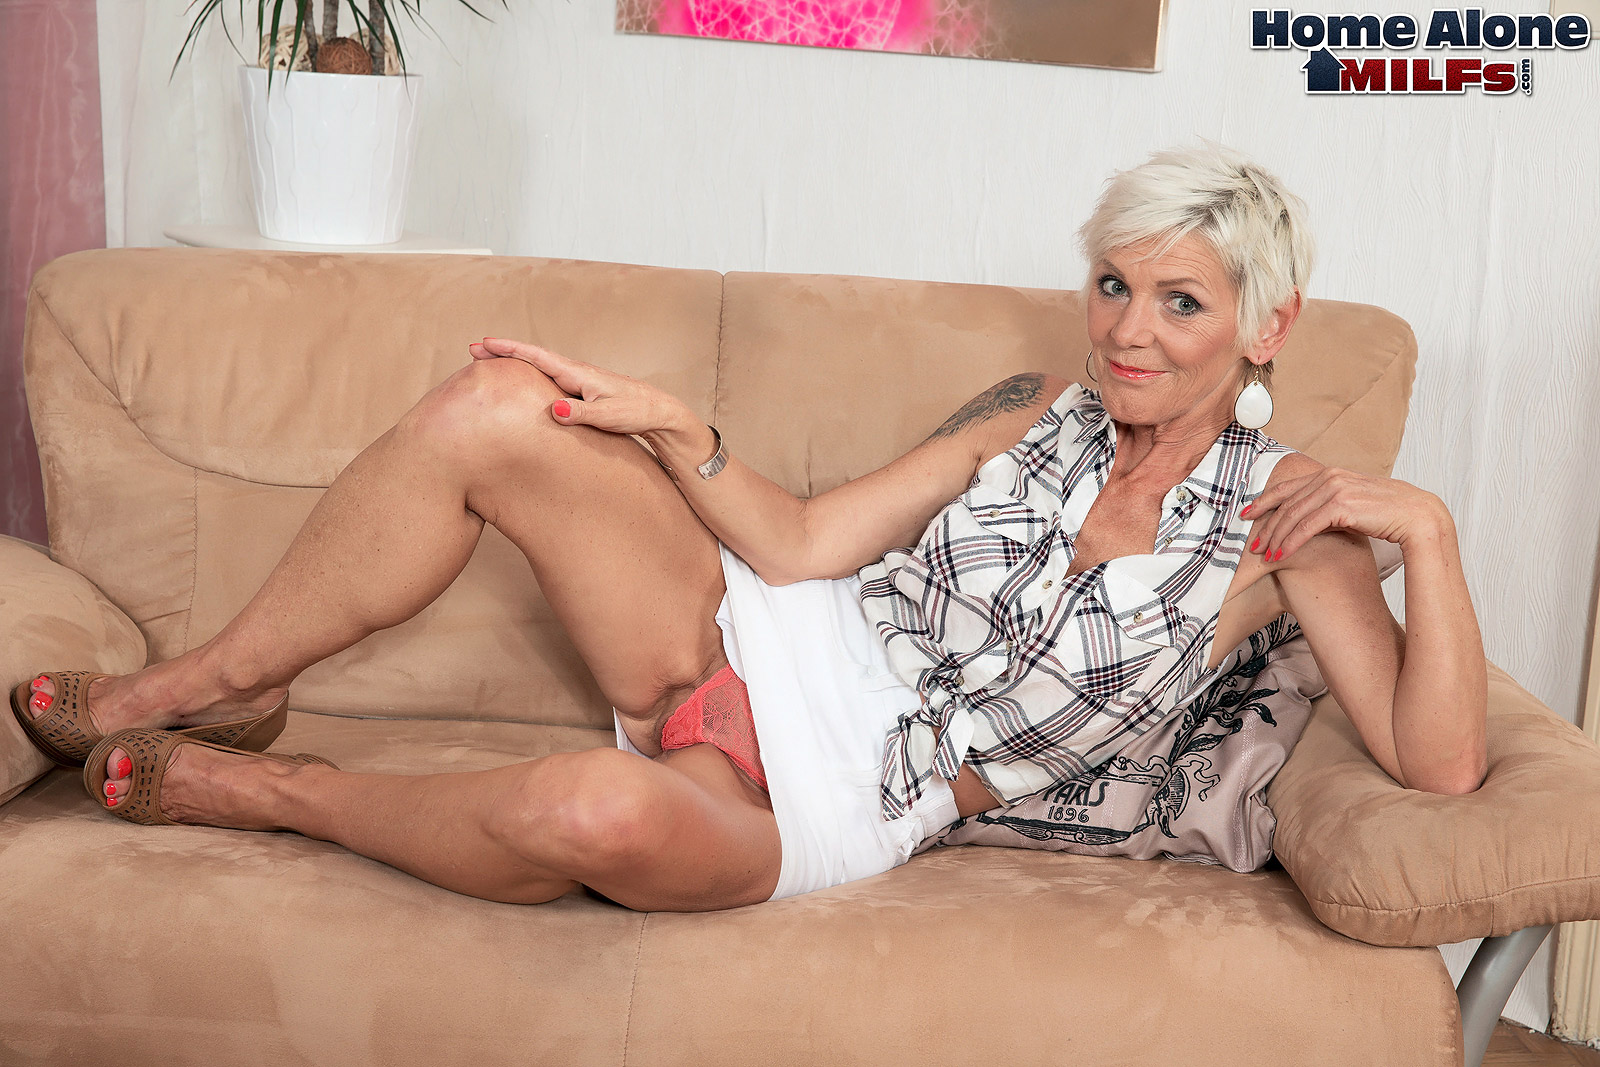 A horny old wife with a great ass - Nicol Mandorla (16:45 ...